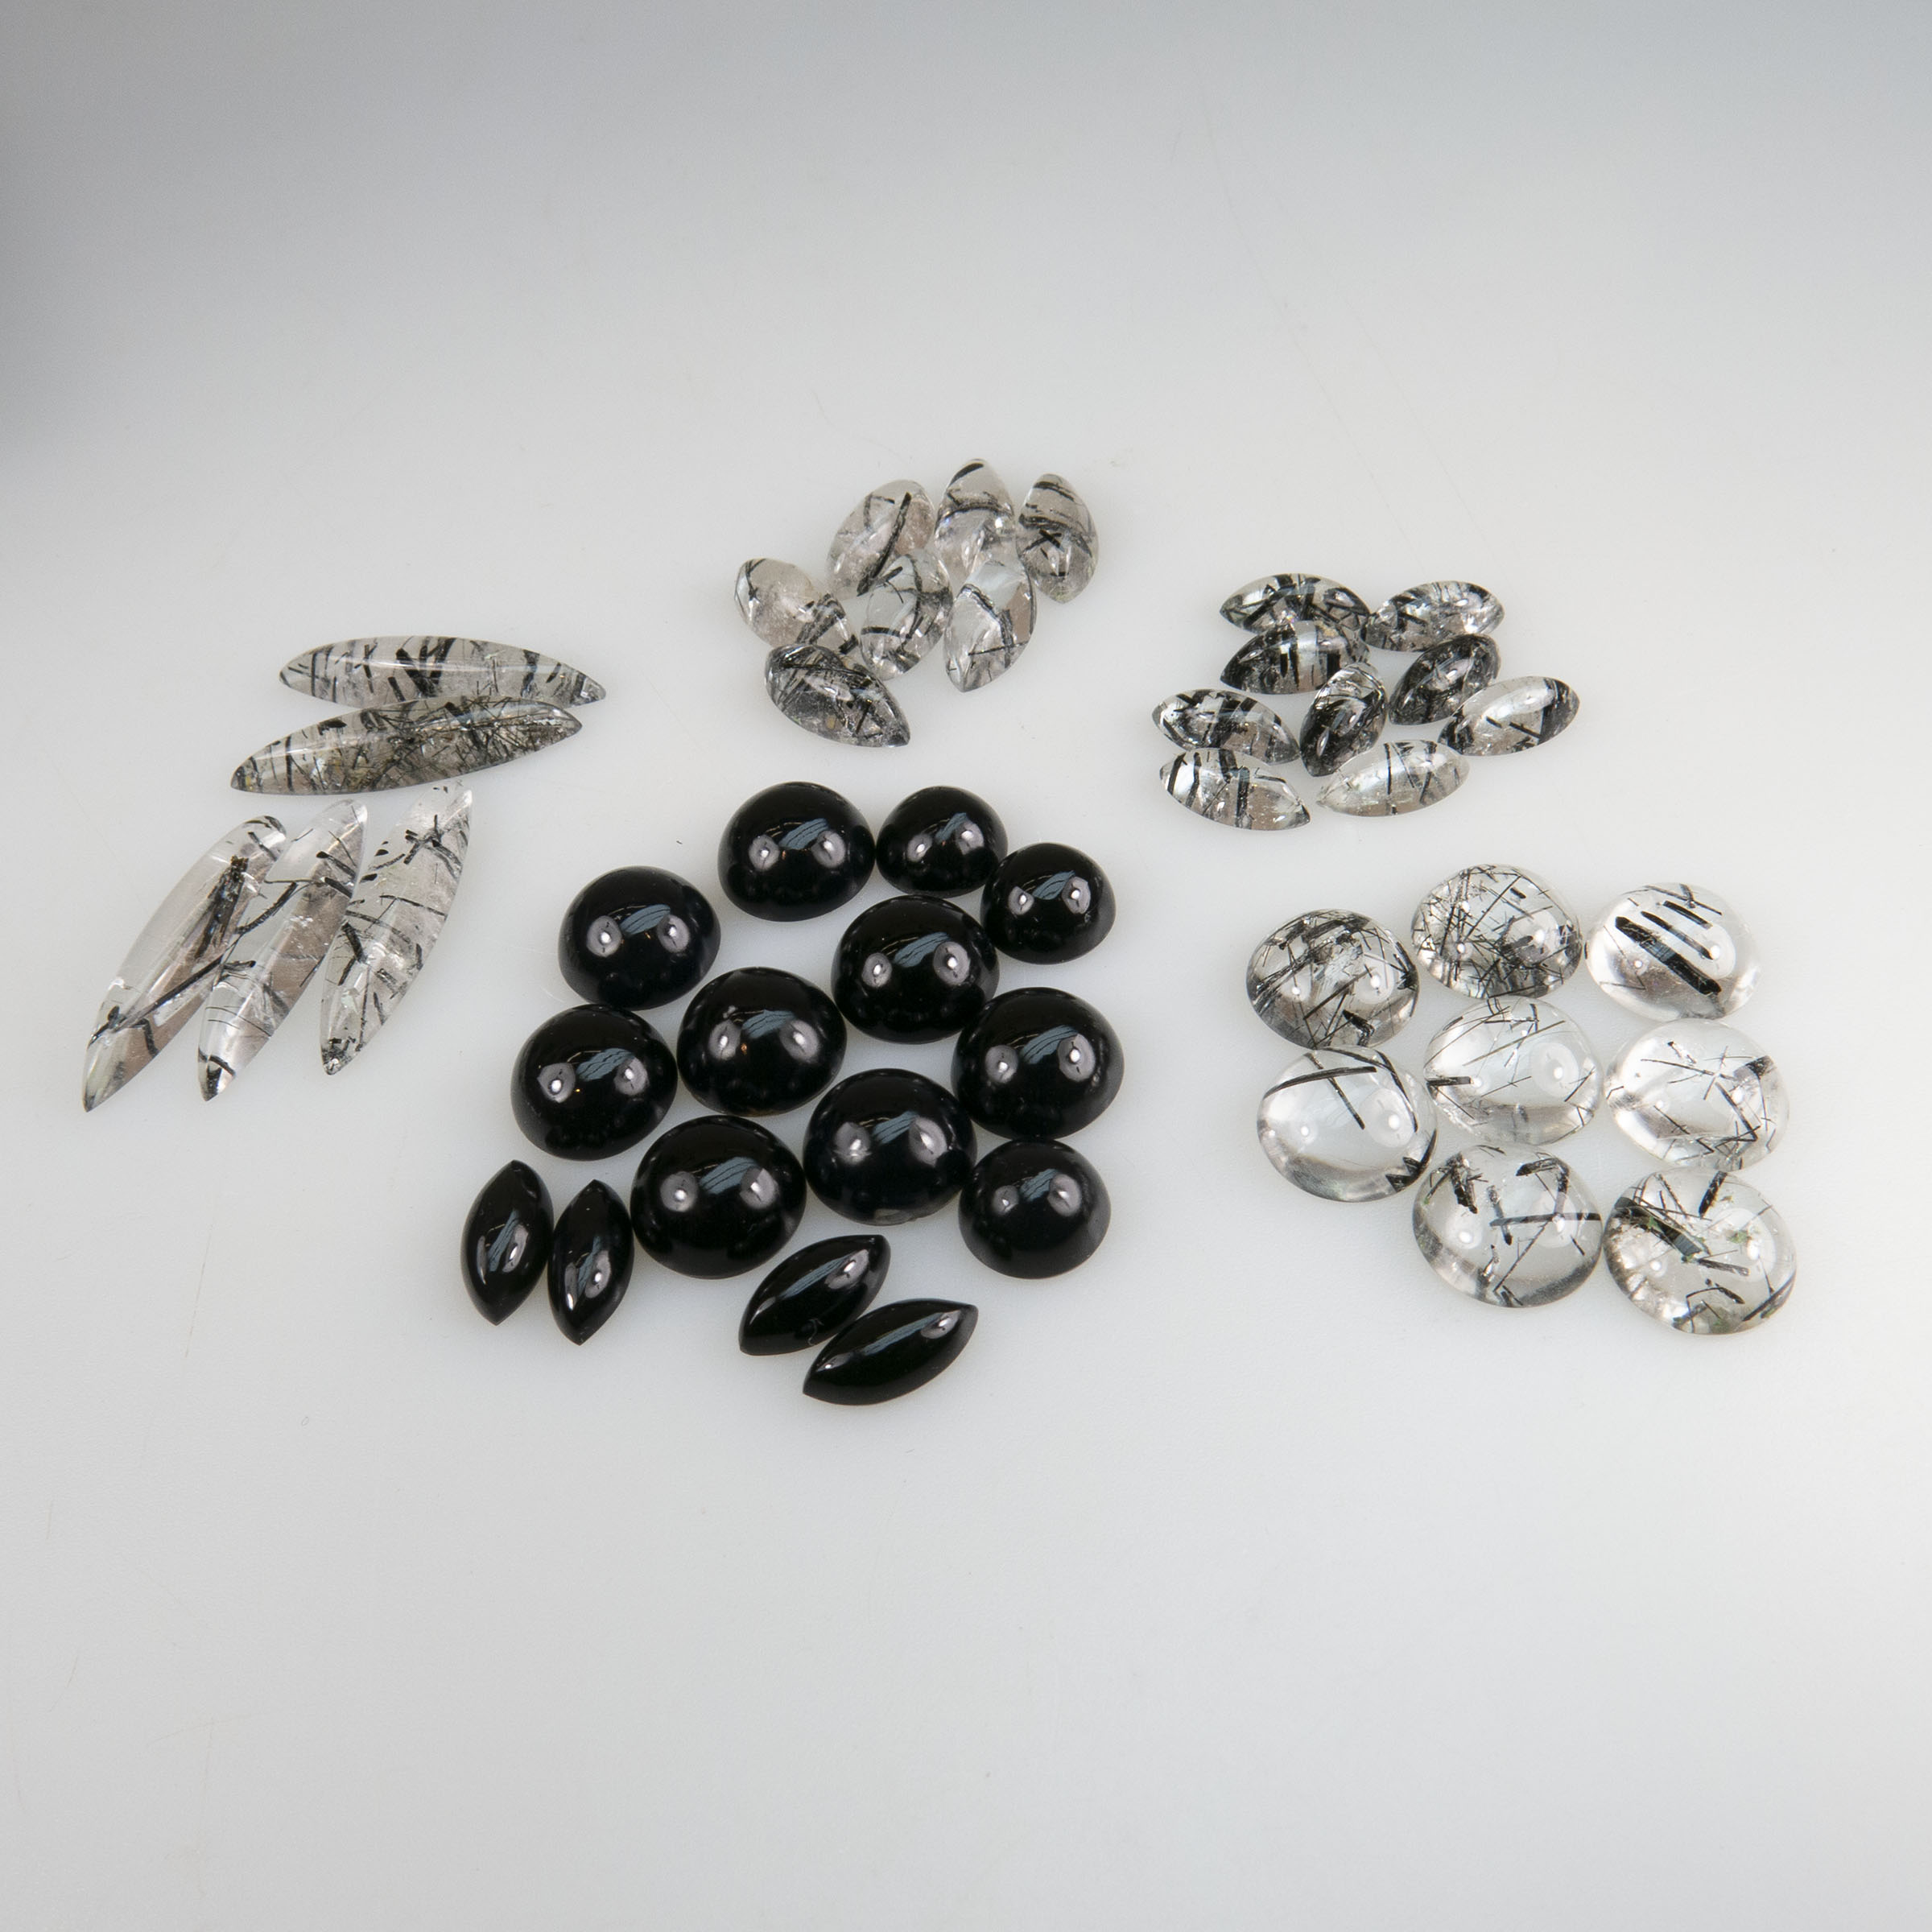 A Collection Of Onyx And Tourmalinated Quartz Cabochons